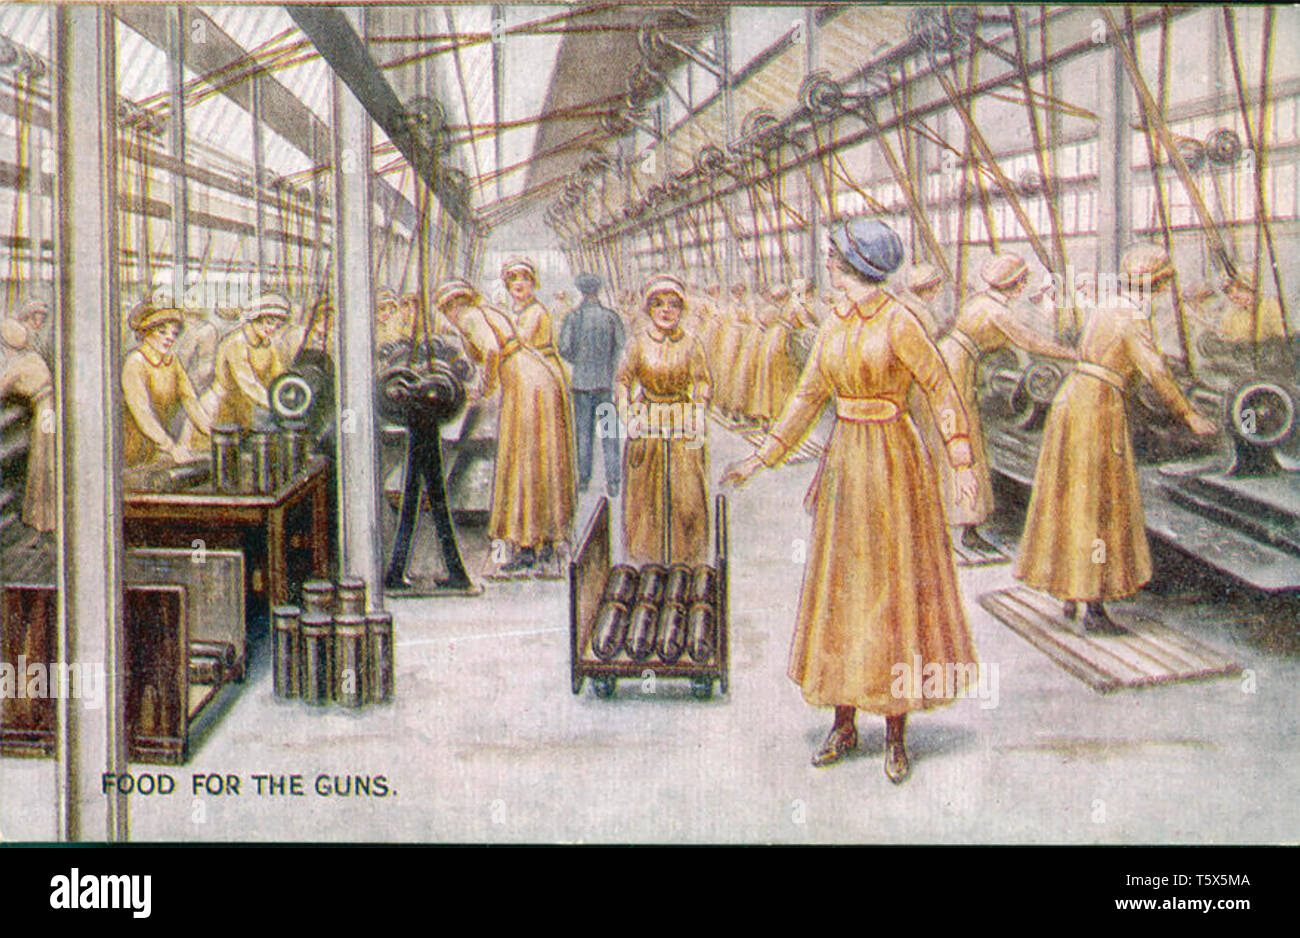 BRITISH MUNITIONS FACTORY about 1915 - Stock Image